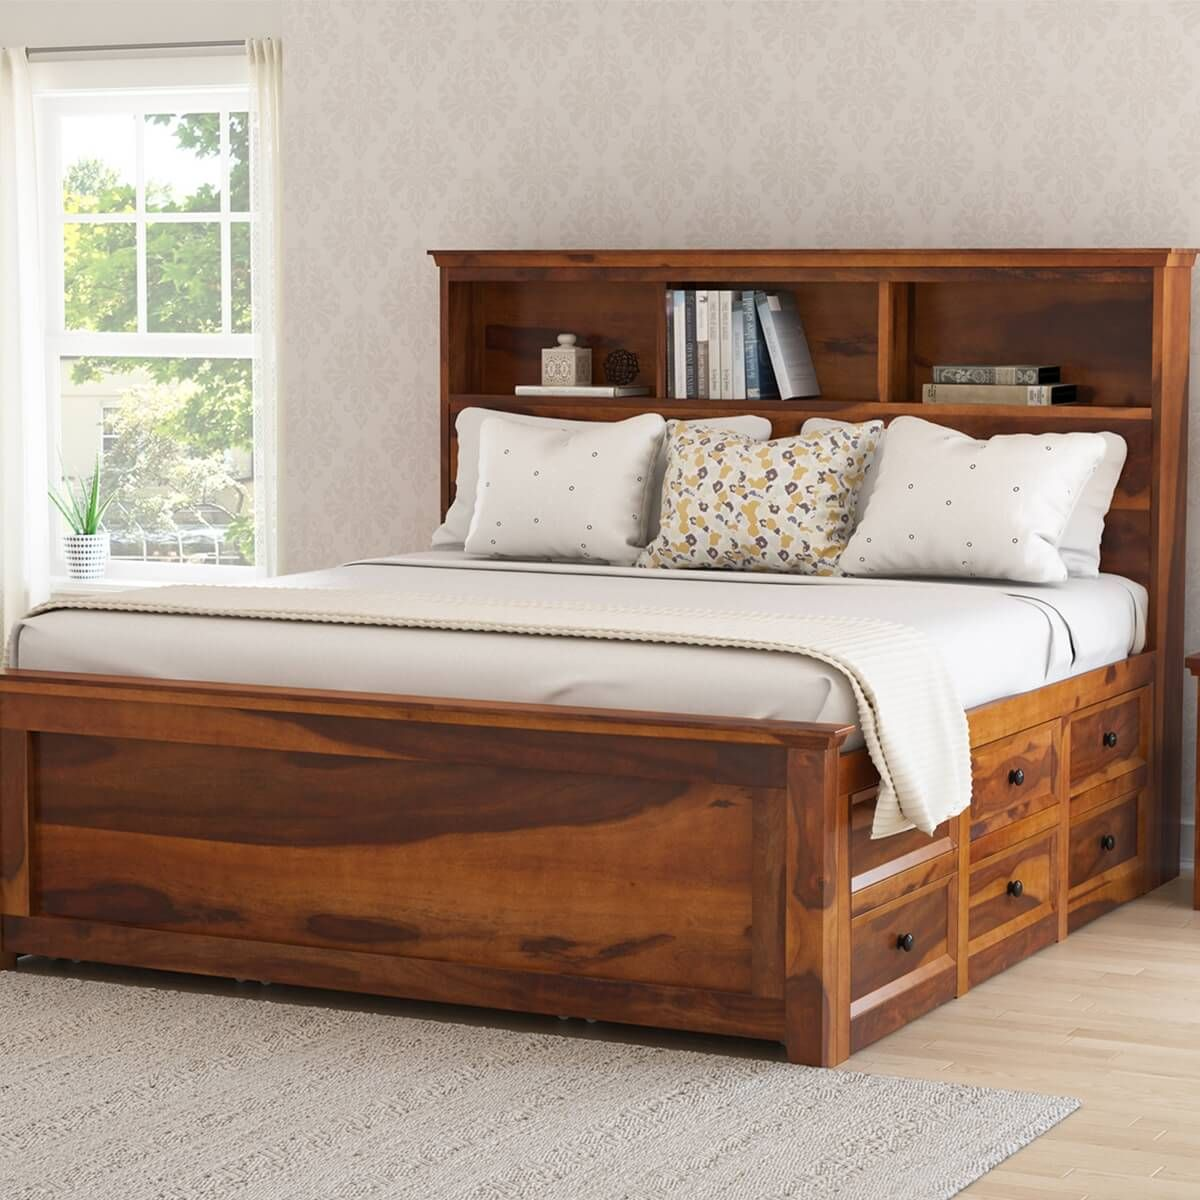 Mission Modern Solid Wood Platform Storage Bed Bed Design Modern Bedroom Design On A Budget Bedroom Bed Design